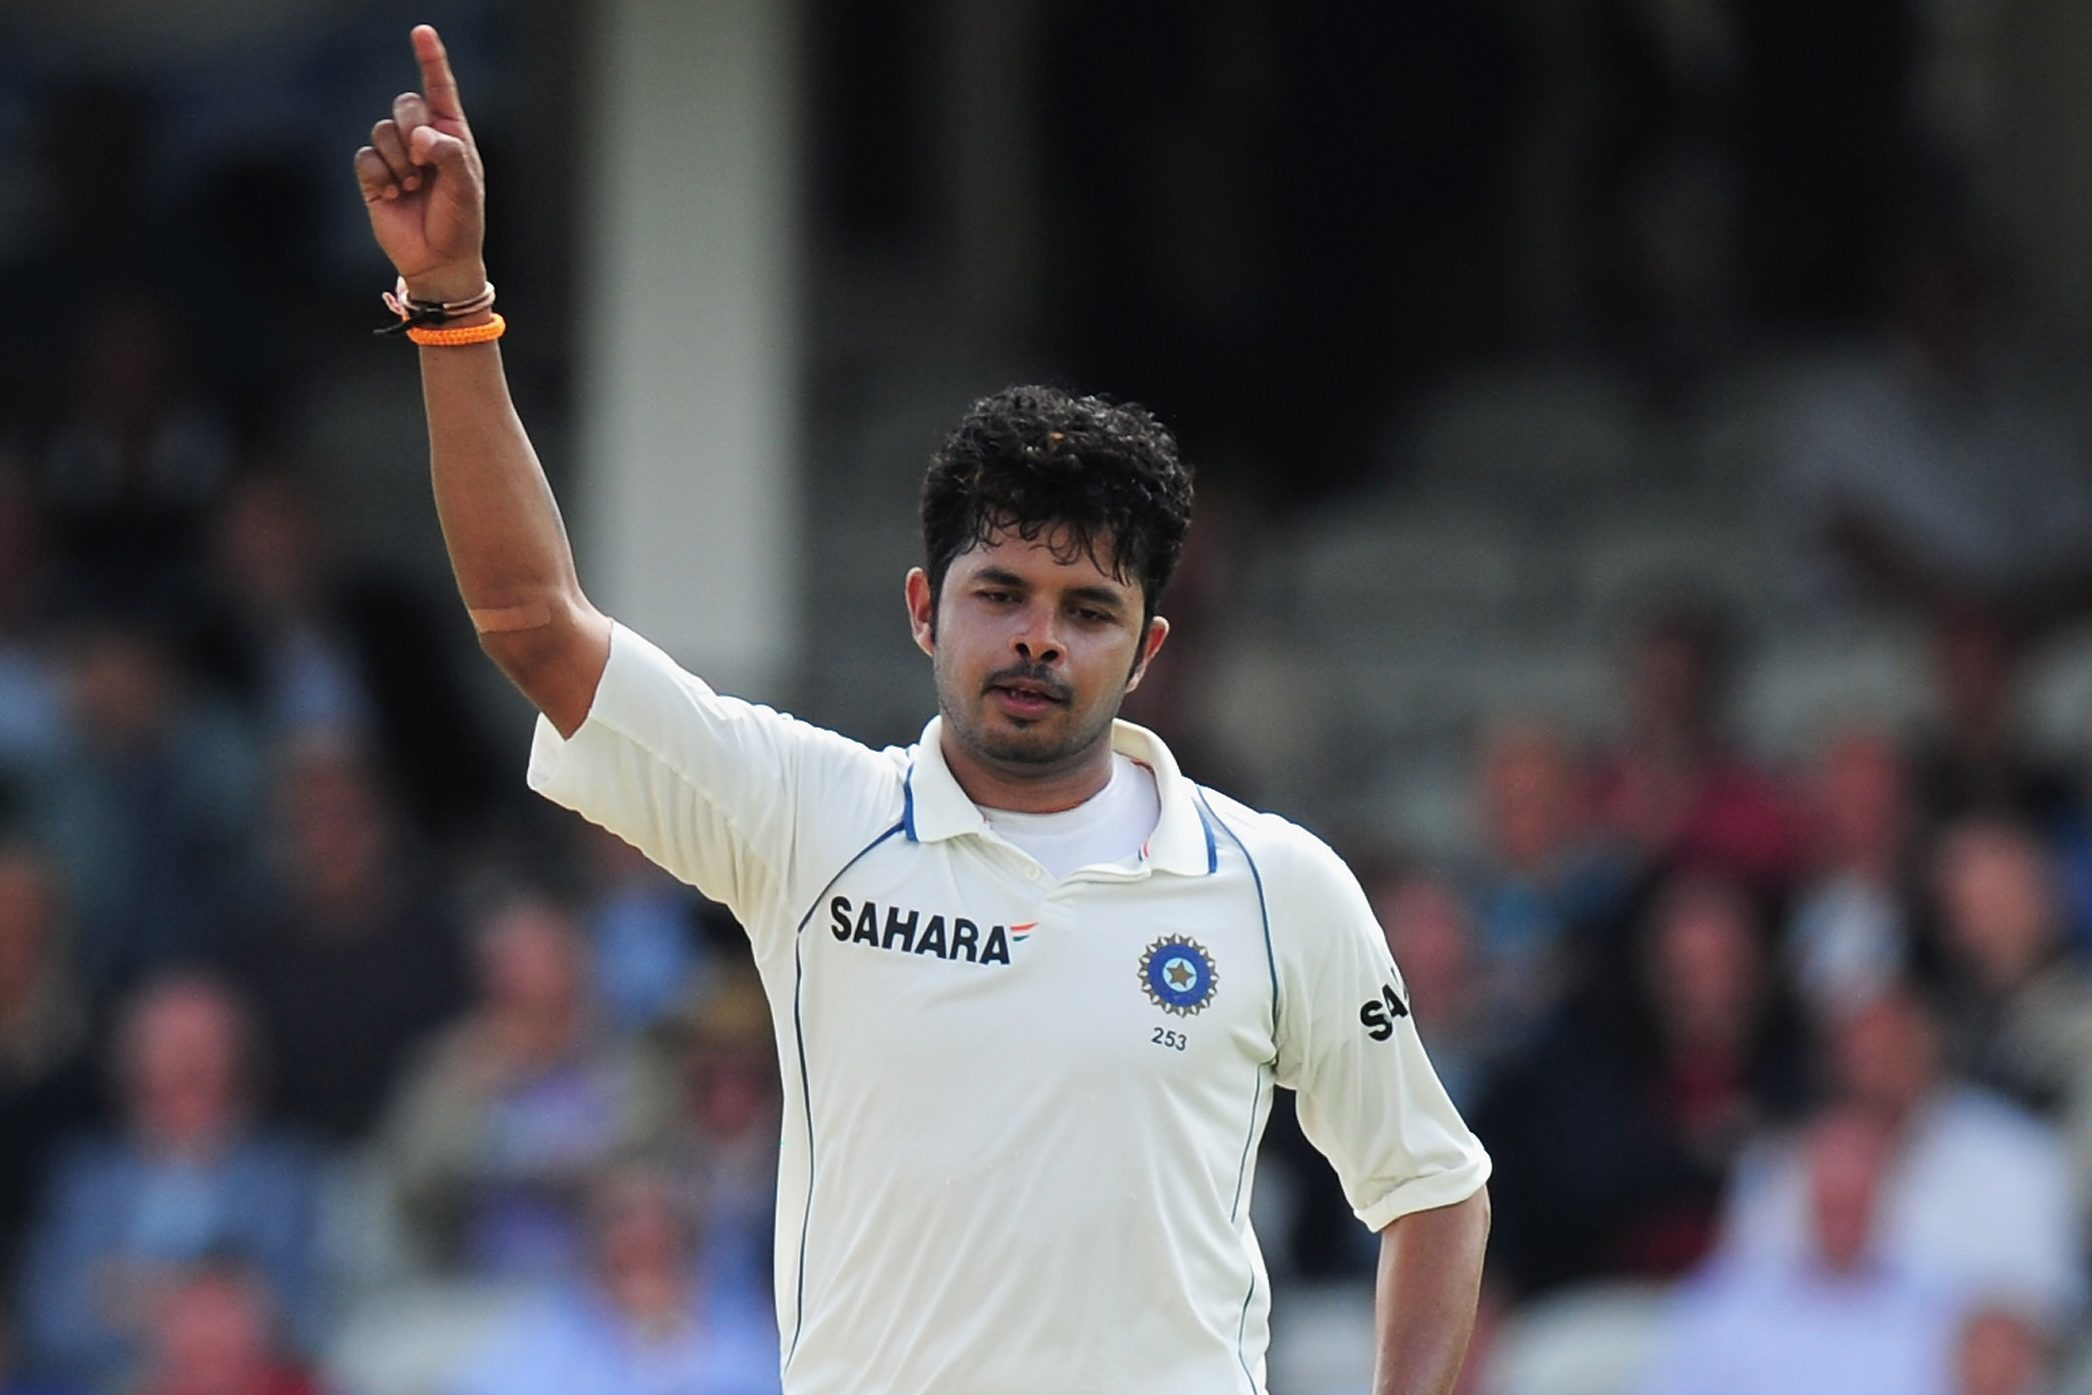 Sreesanth celebrates the wicket of Eoin Morgan of England a test match between England and India in 2011.